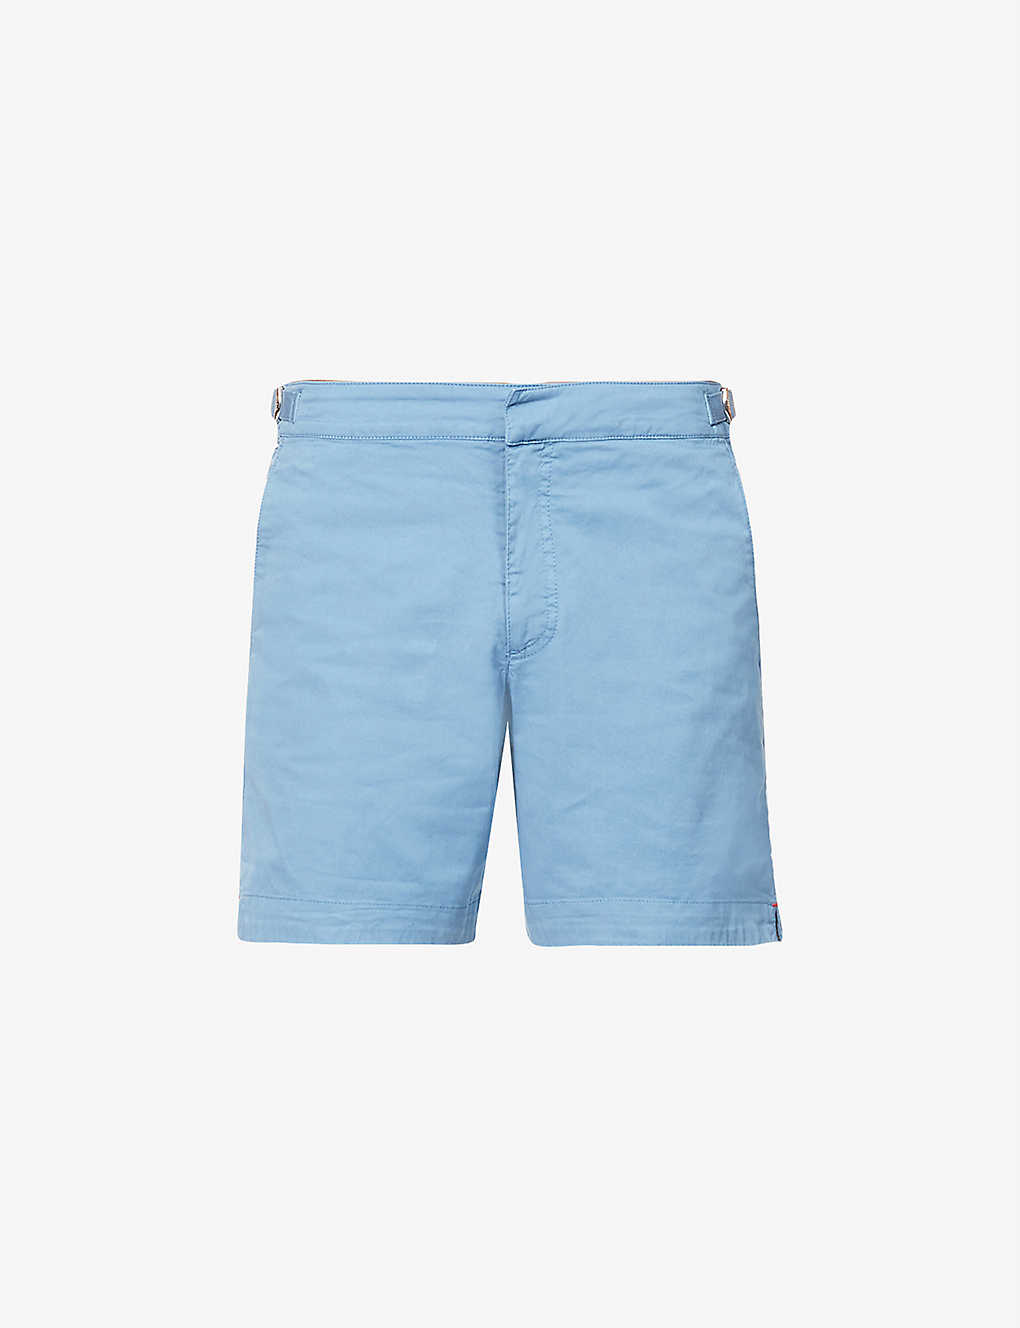 ORLEBAR BROWN: Bulldog mid-rise stretch-cotton shorts